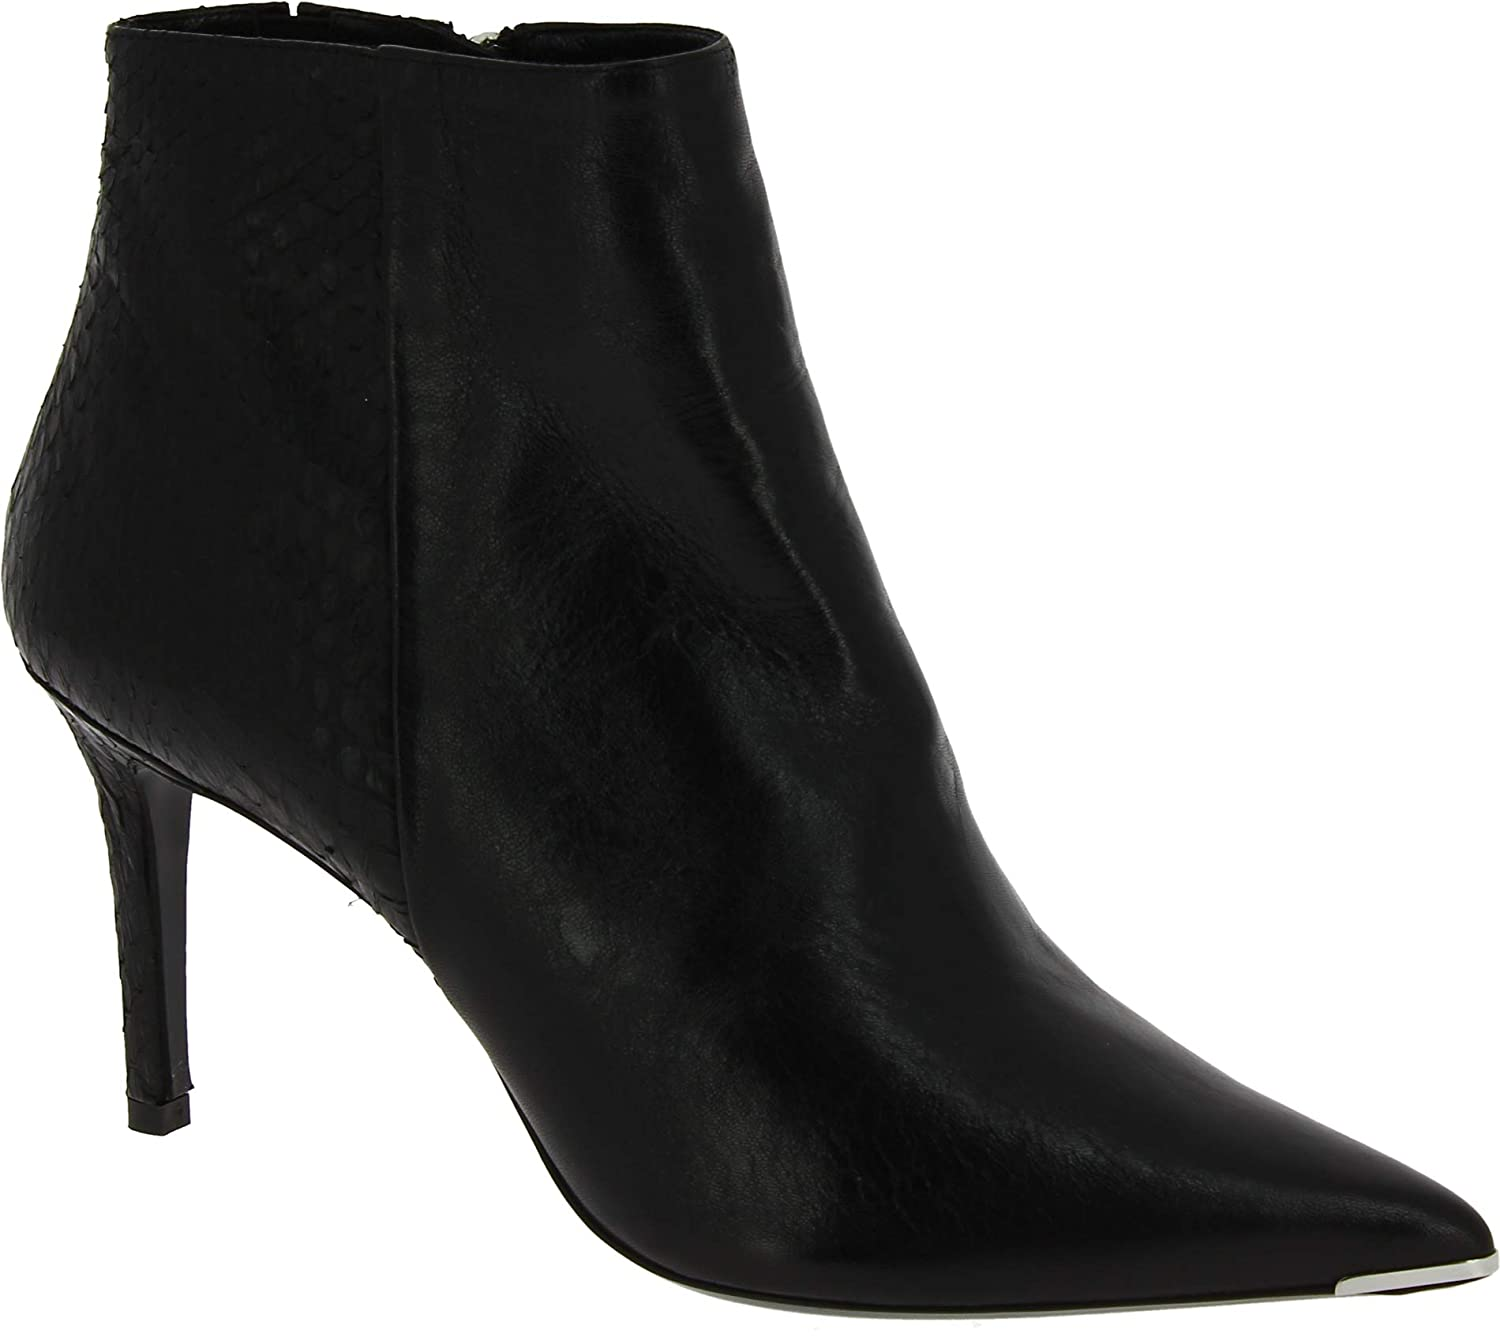 Black Barbara Bui Women's Leather Ankle Boots - Booties shoes